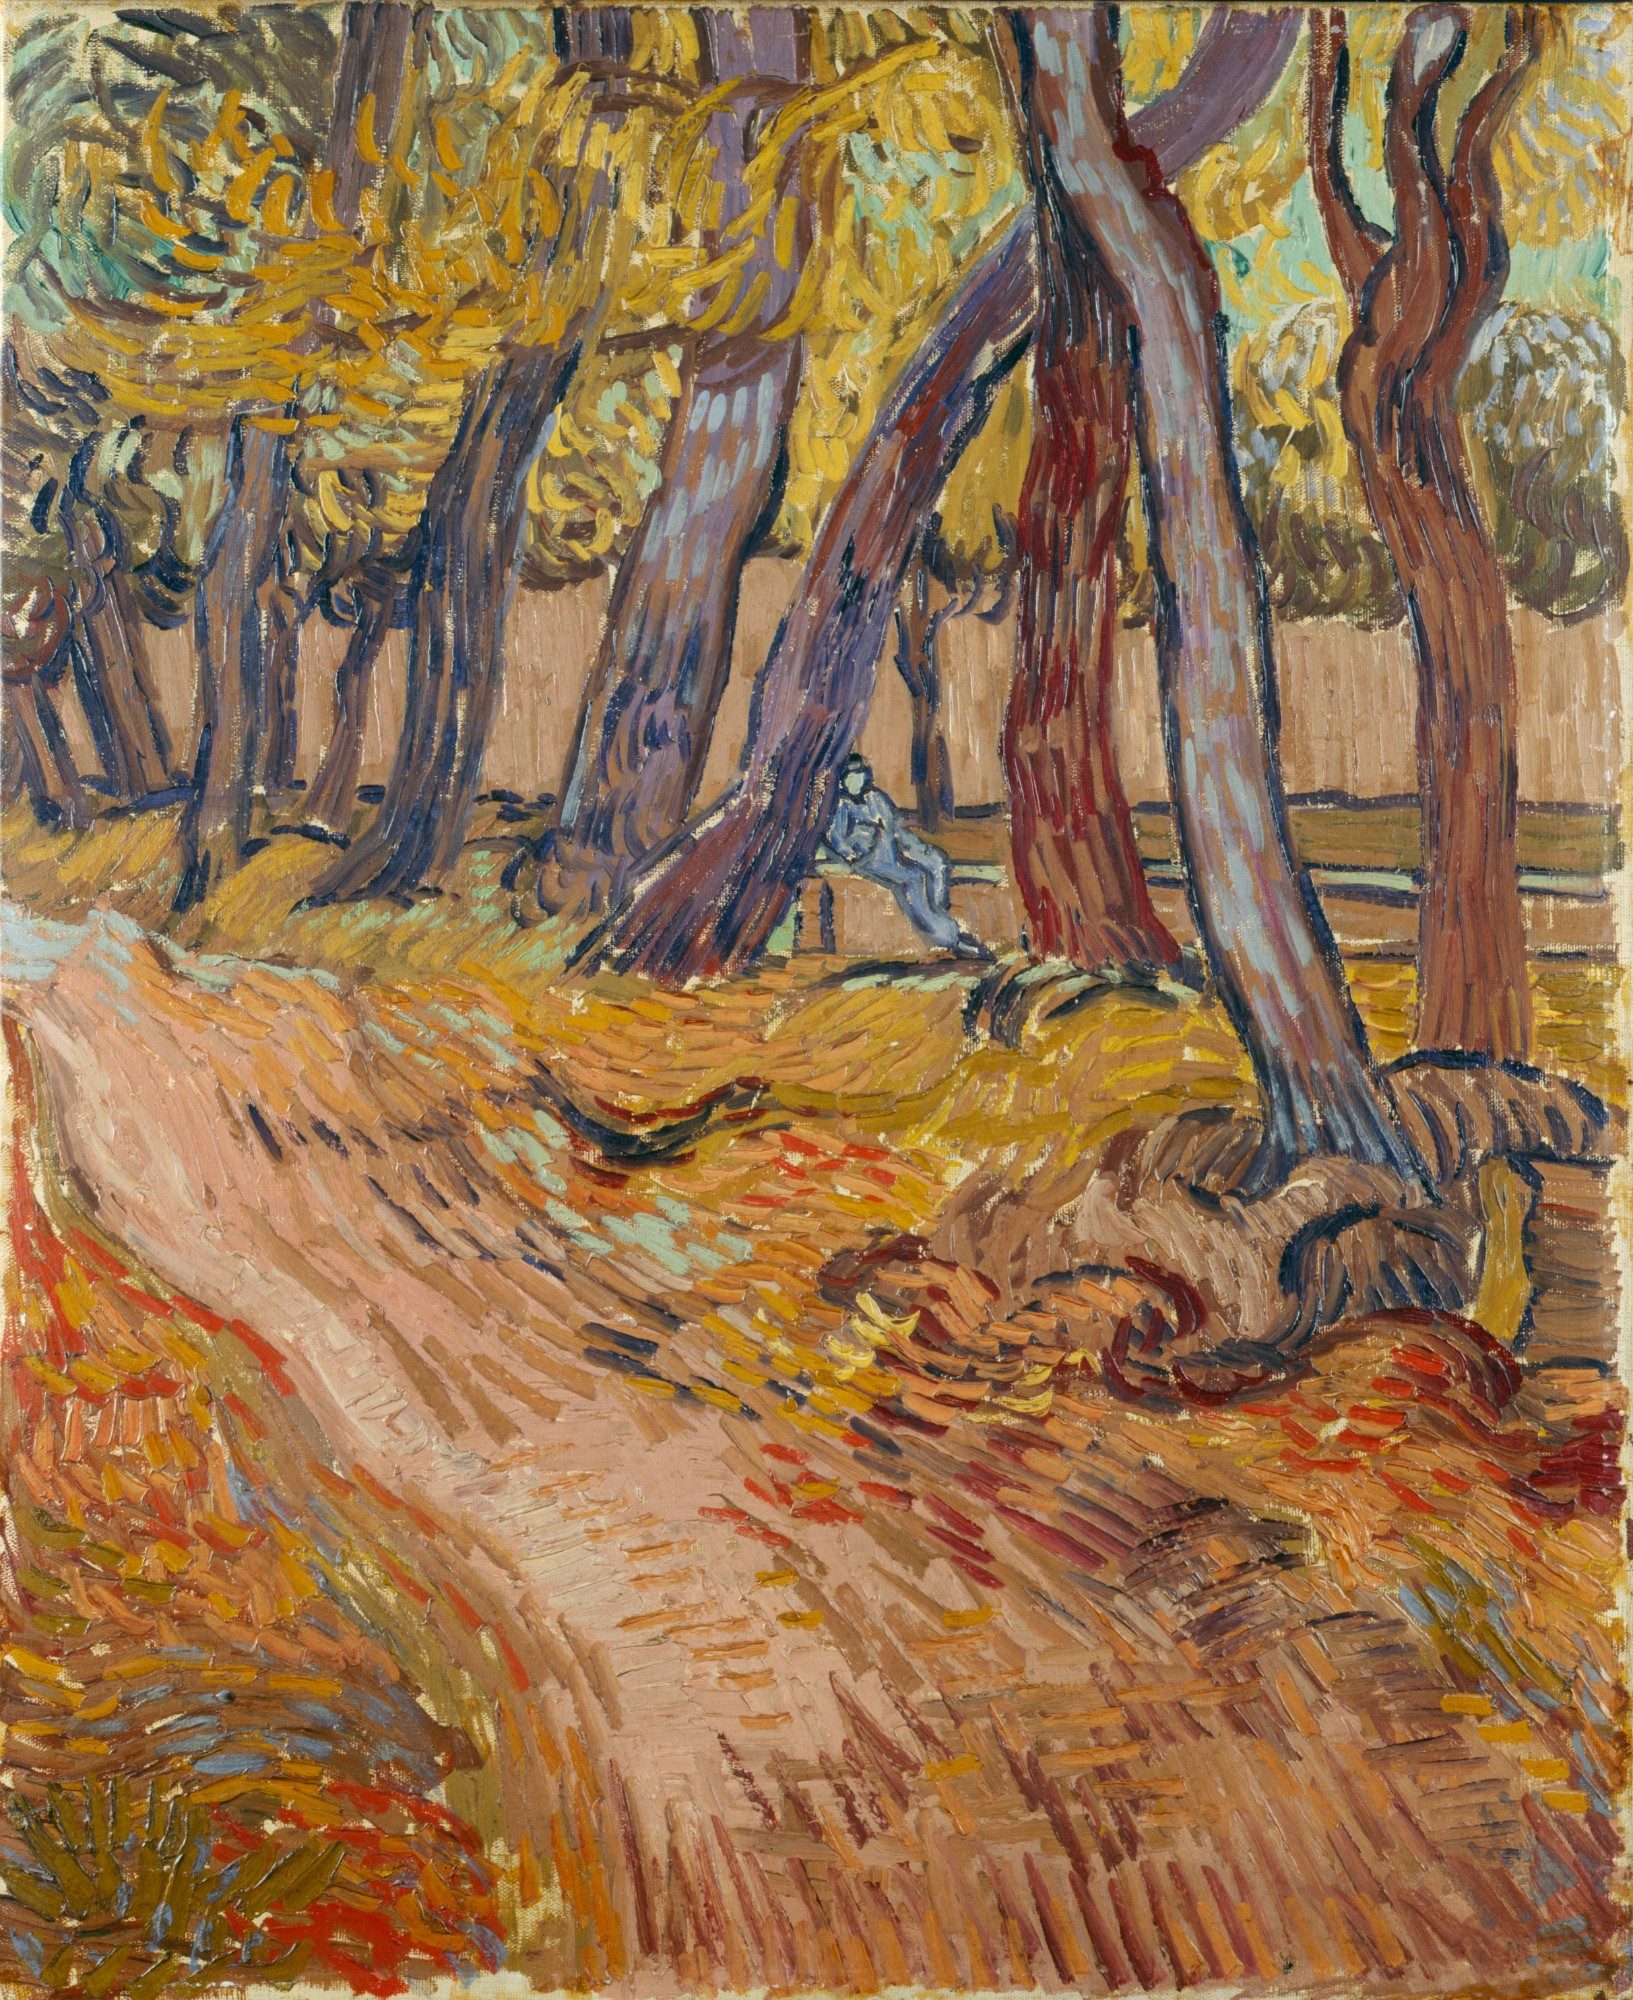 Vincent van Gogh - Path in the garden of the Asylum, 1889